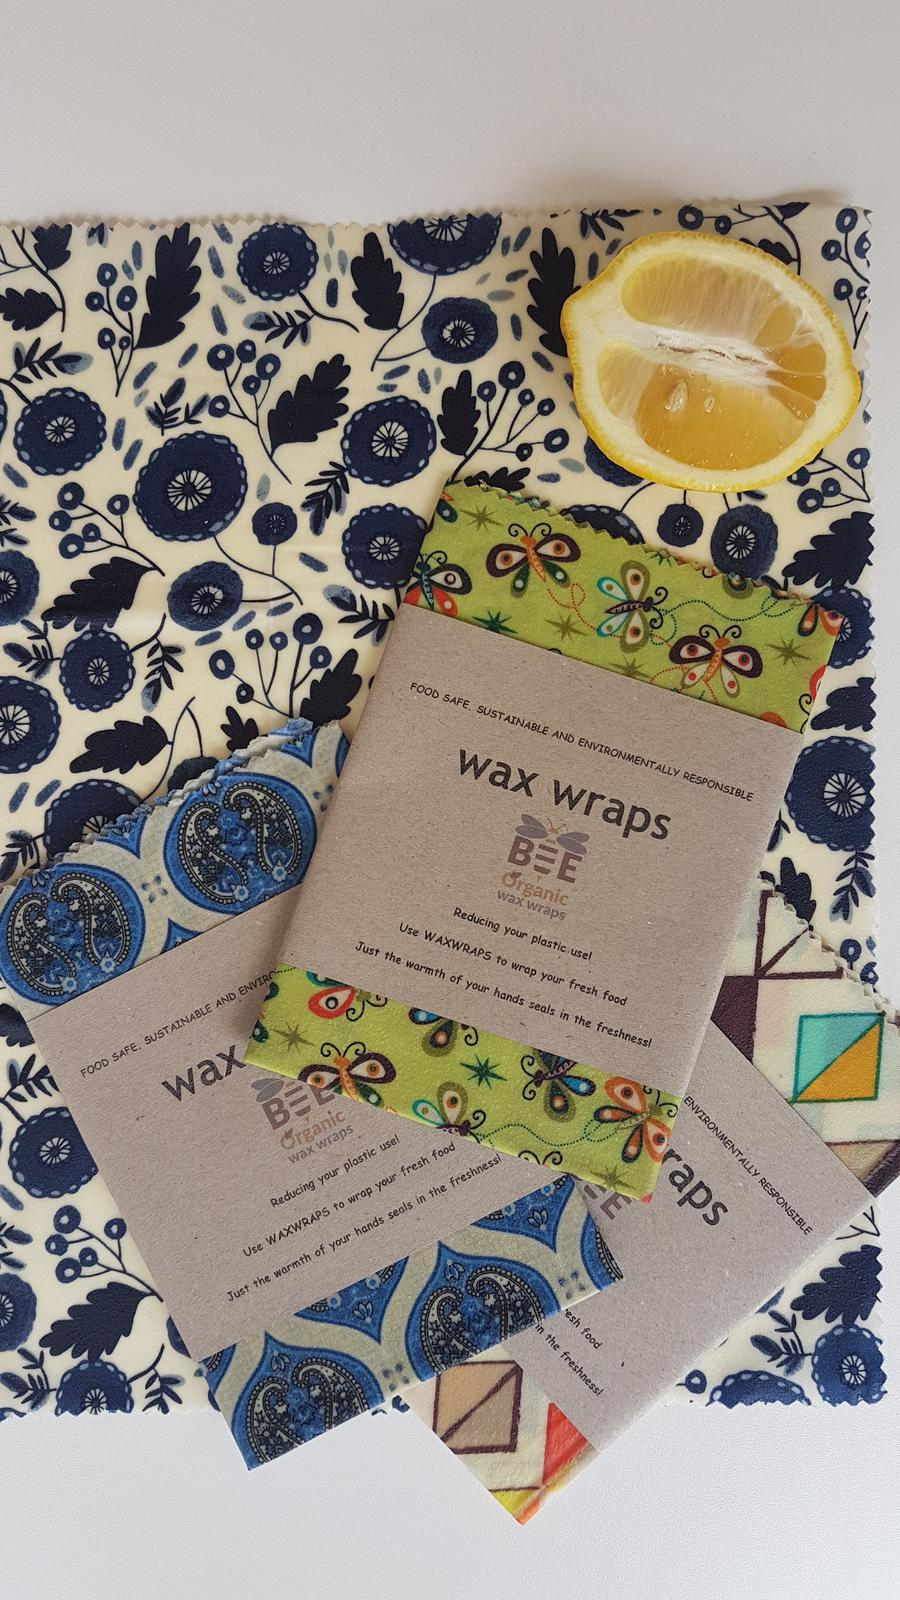 beeorganic wax wraps